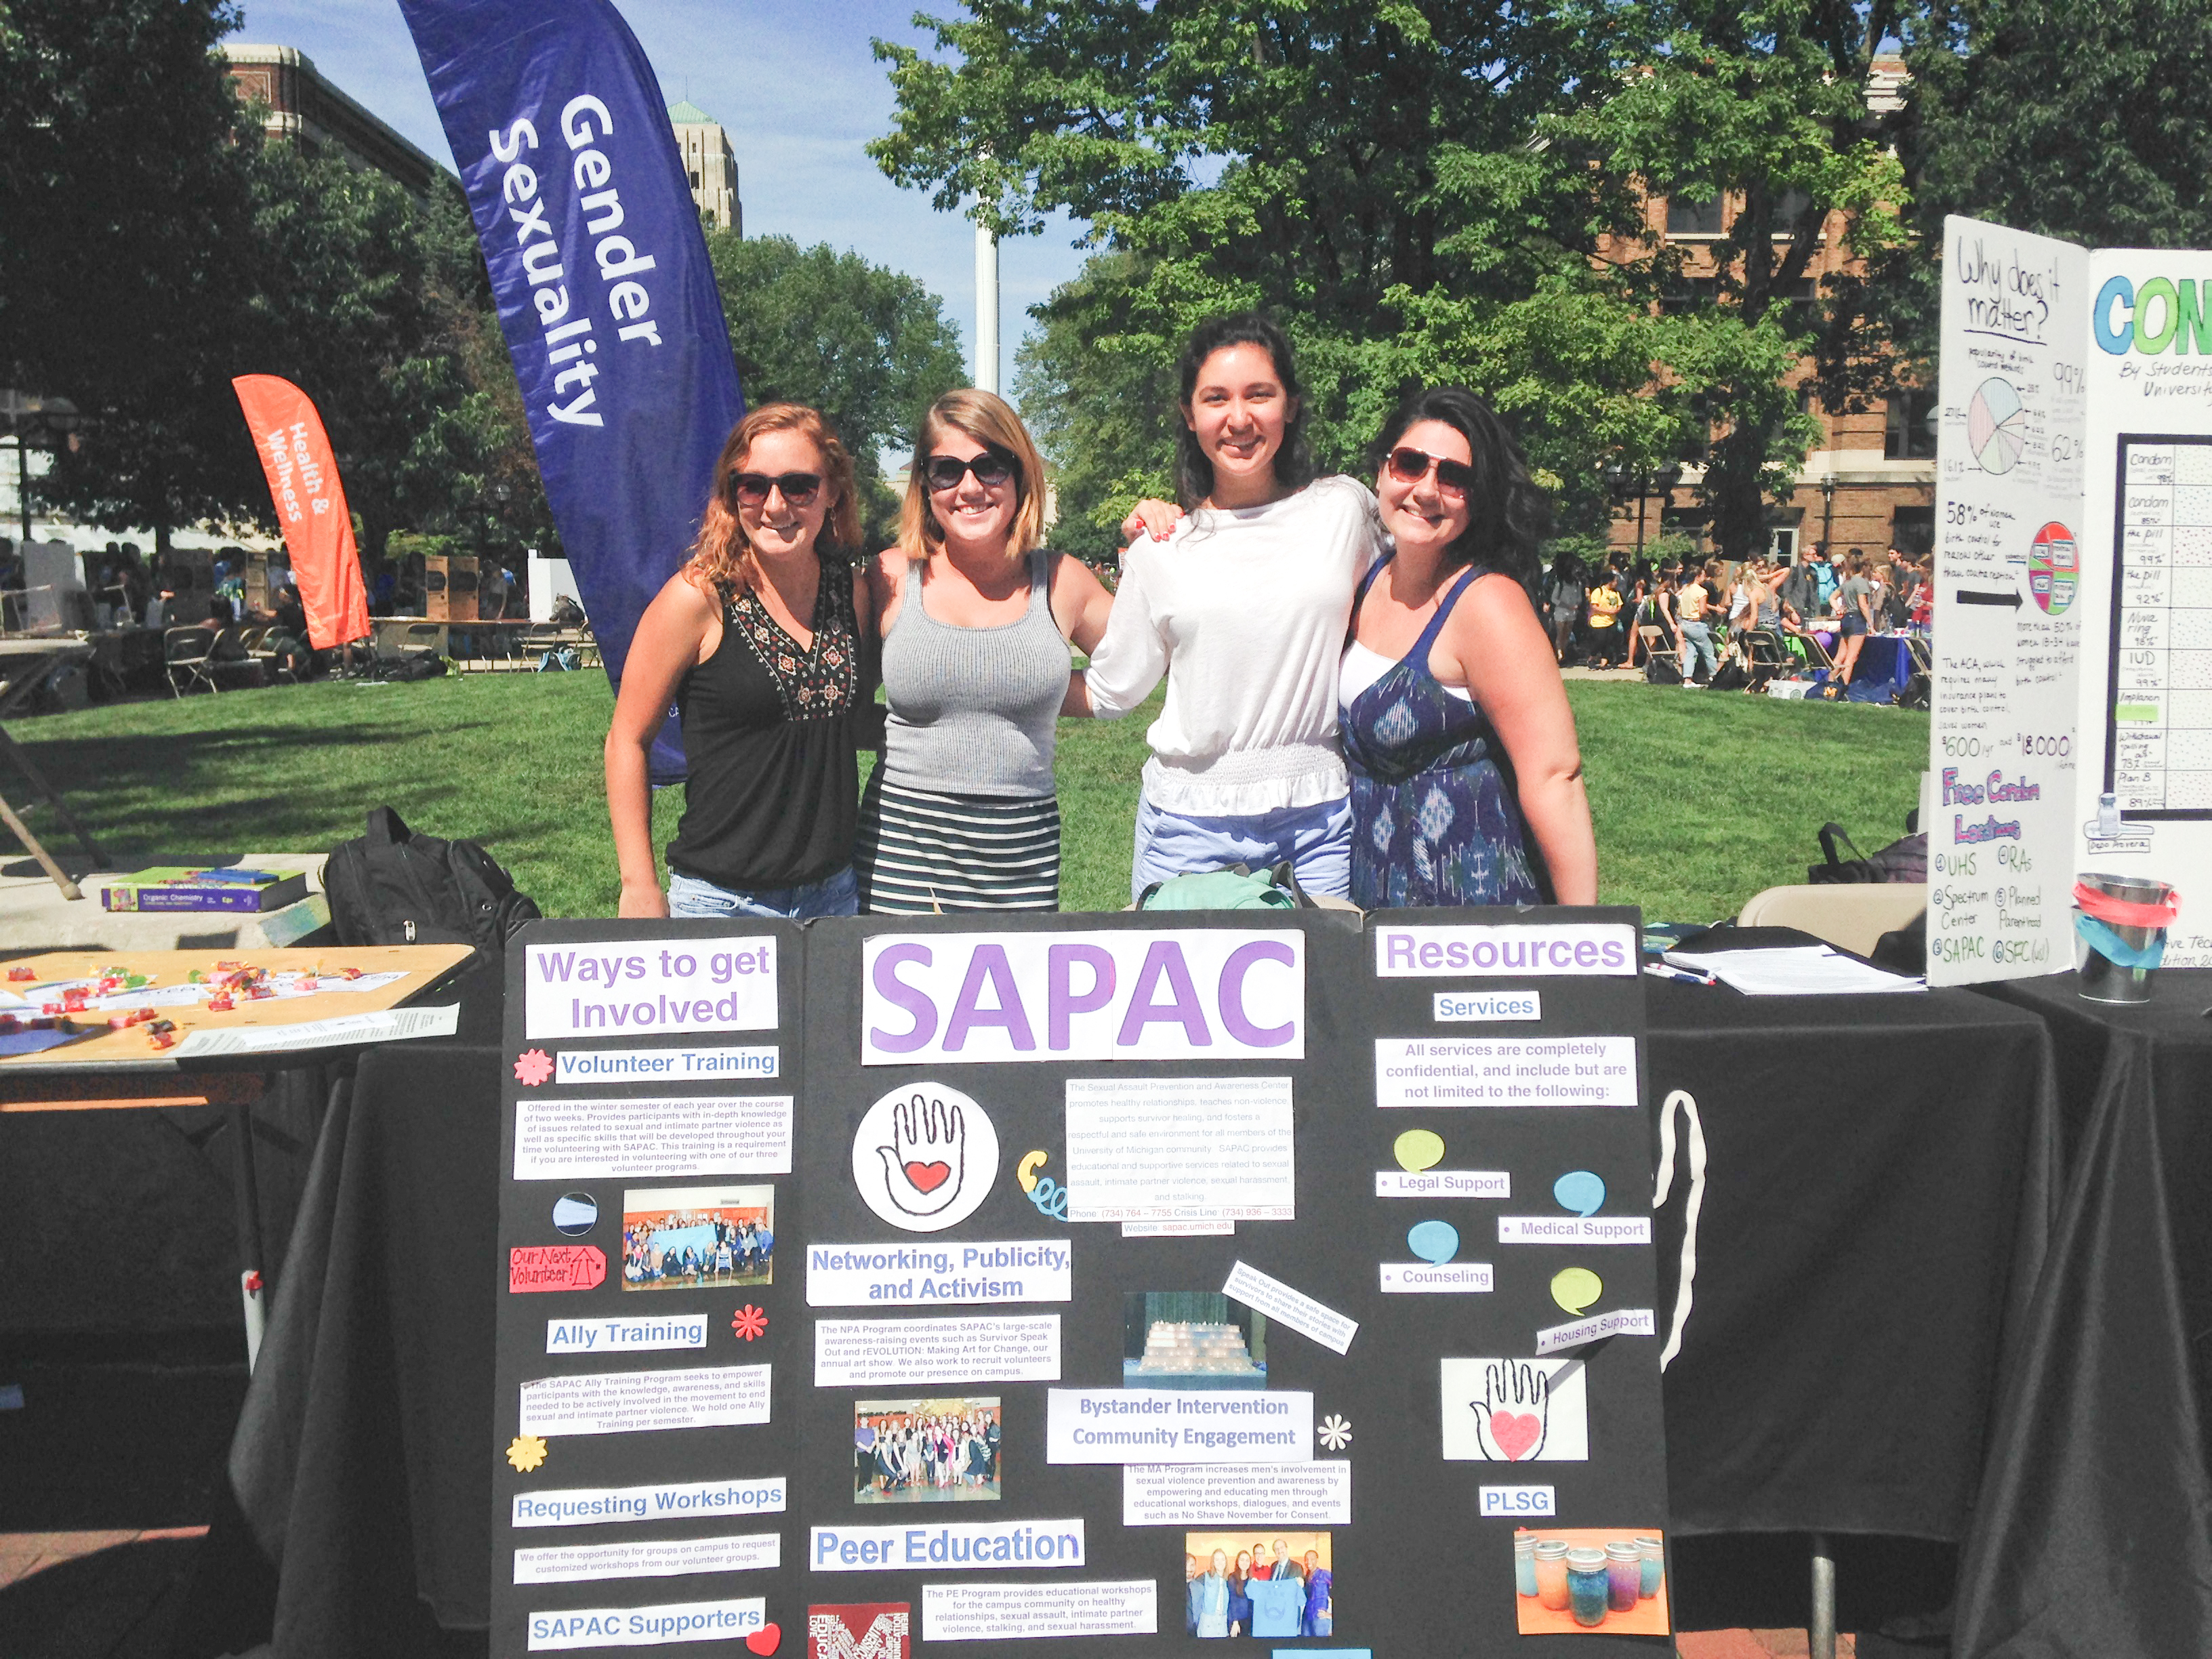 Students stand in the Diag in front of a SAPAC poster